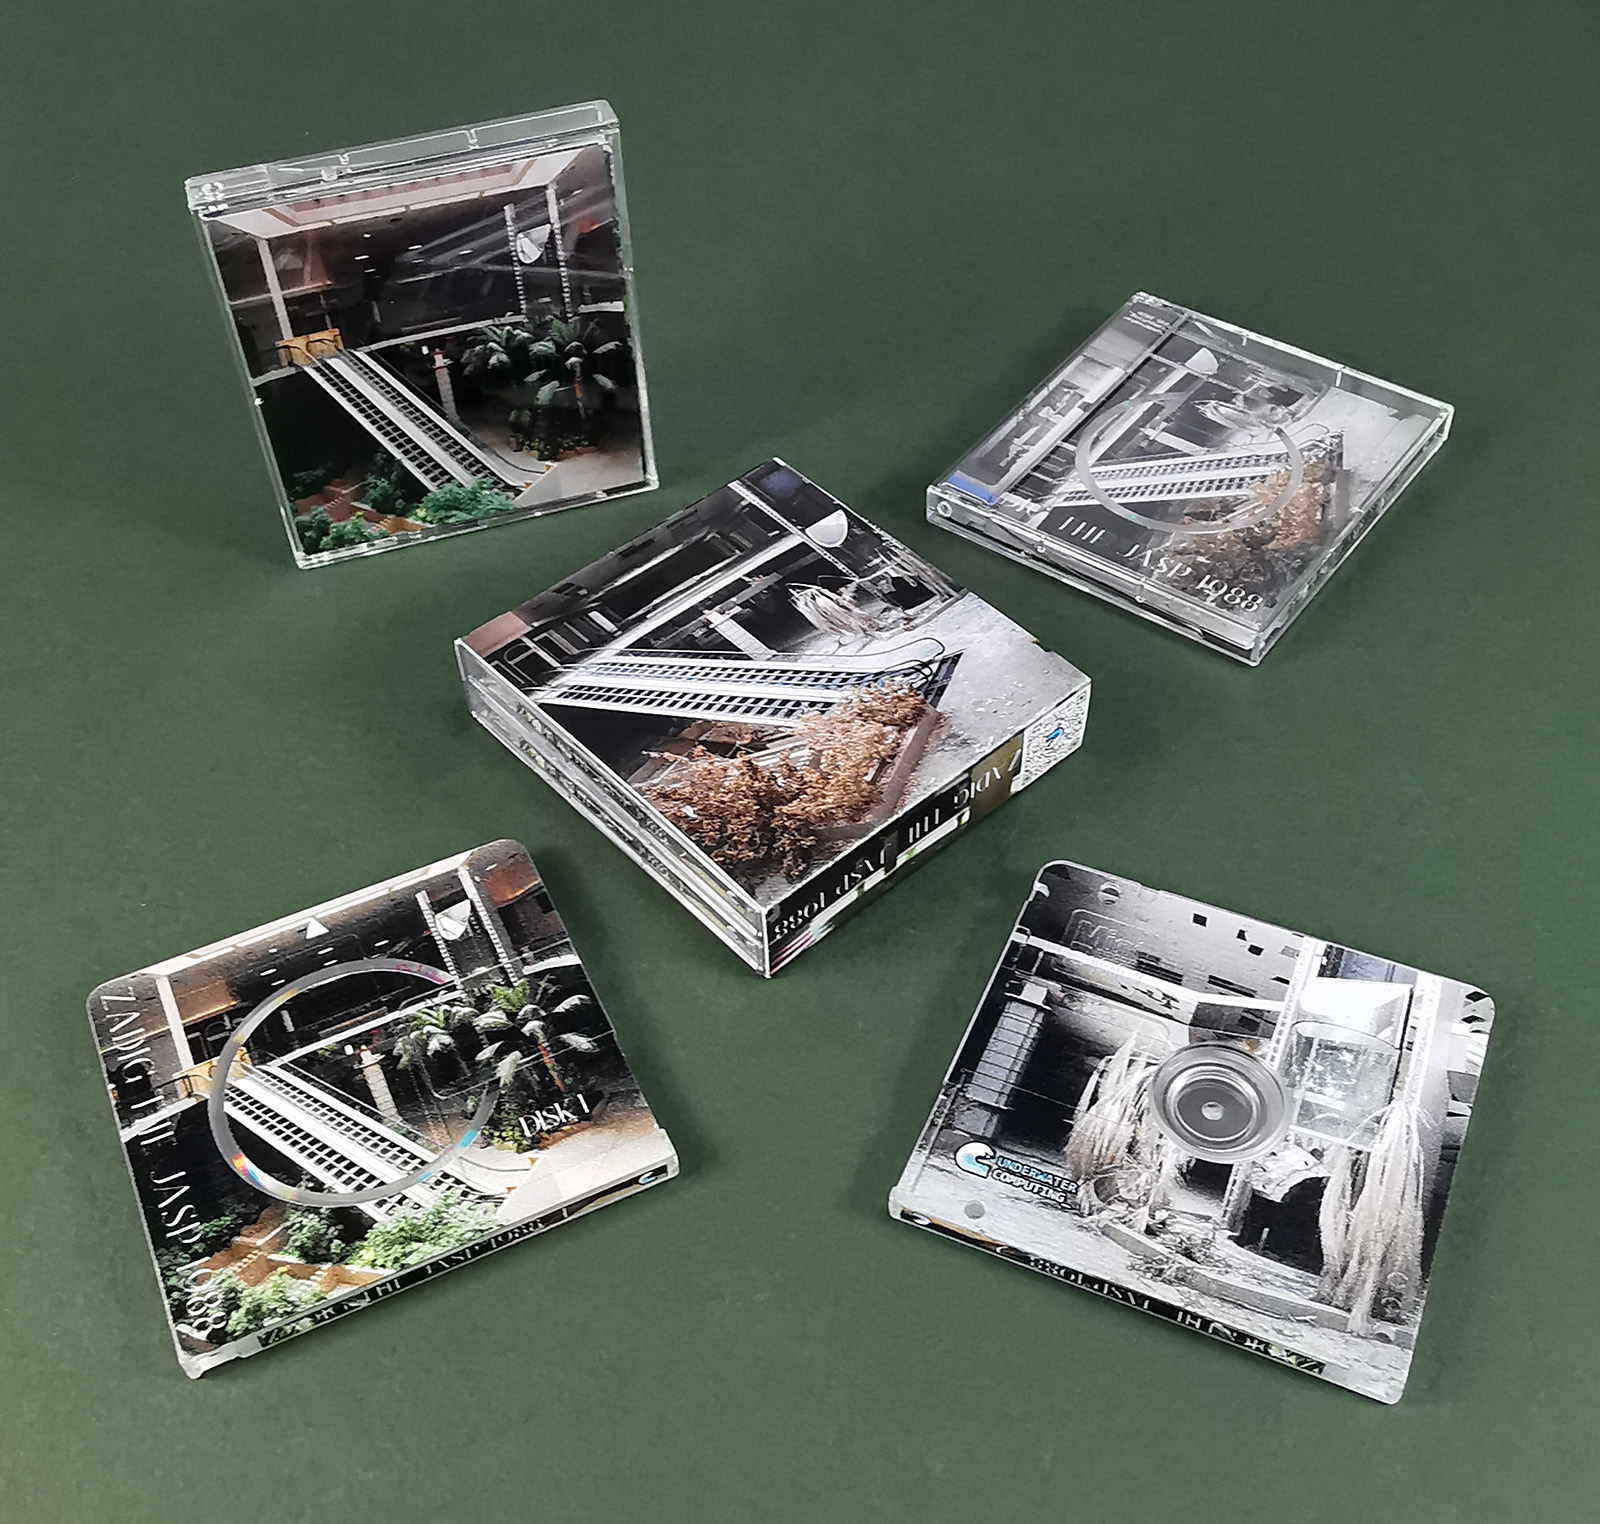 Full colour and full coverage printed double MiniDisc set in outer O-cards